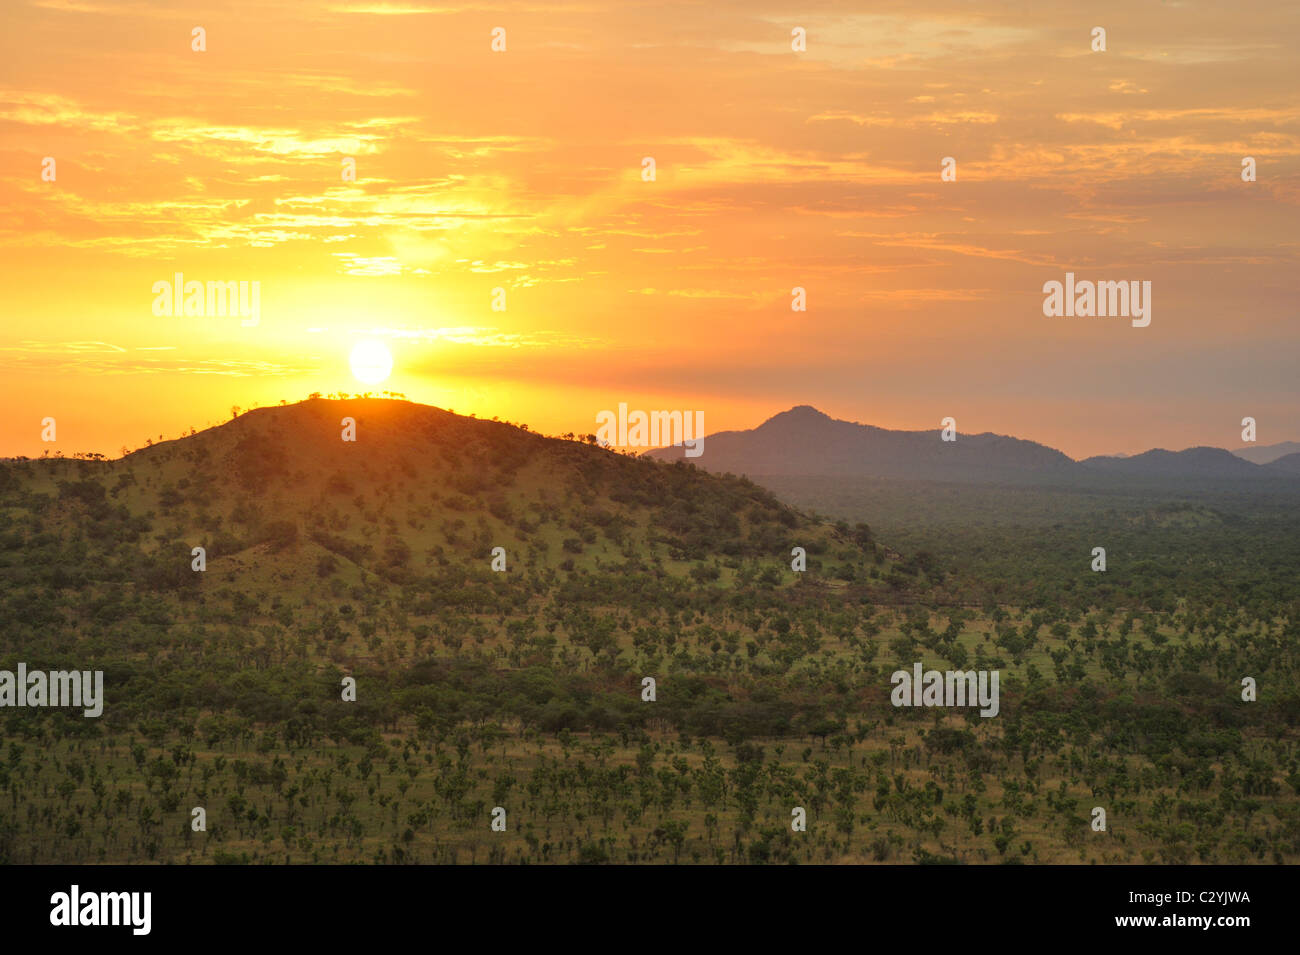 Sun setting behind Boma National Park hills, Boma-Jonglei State, South Sudan Stock Photo